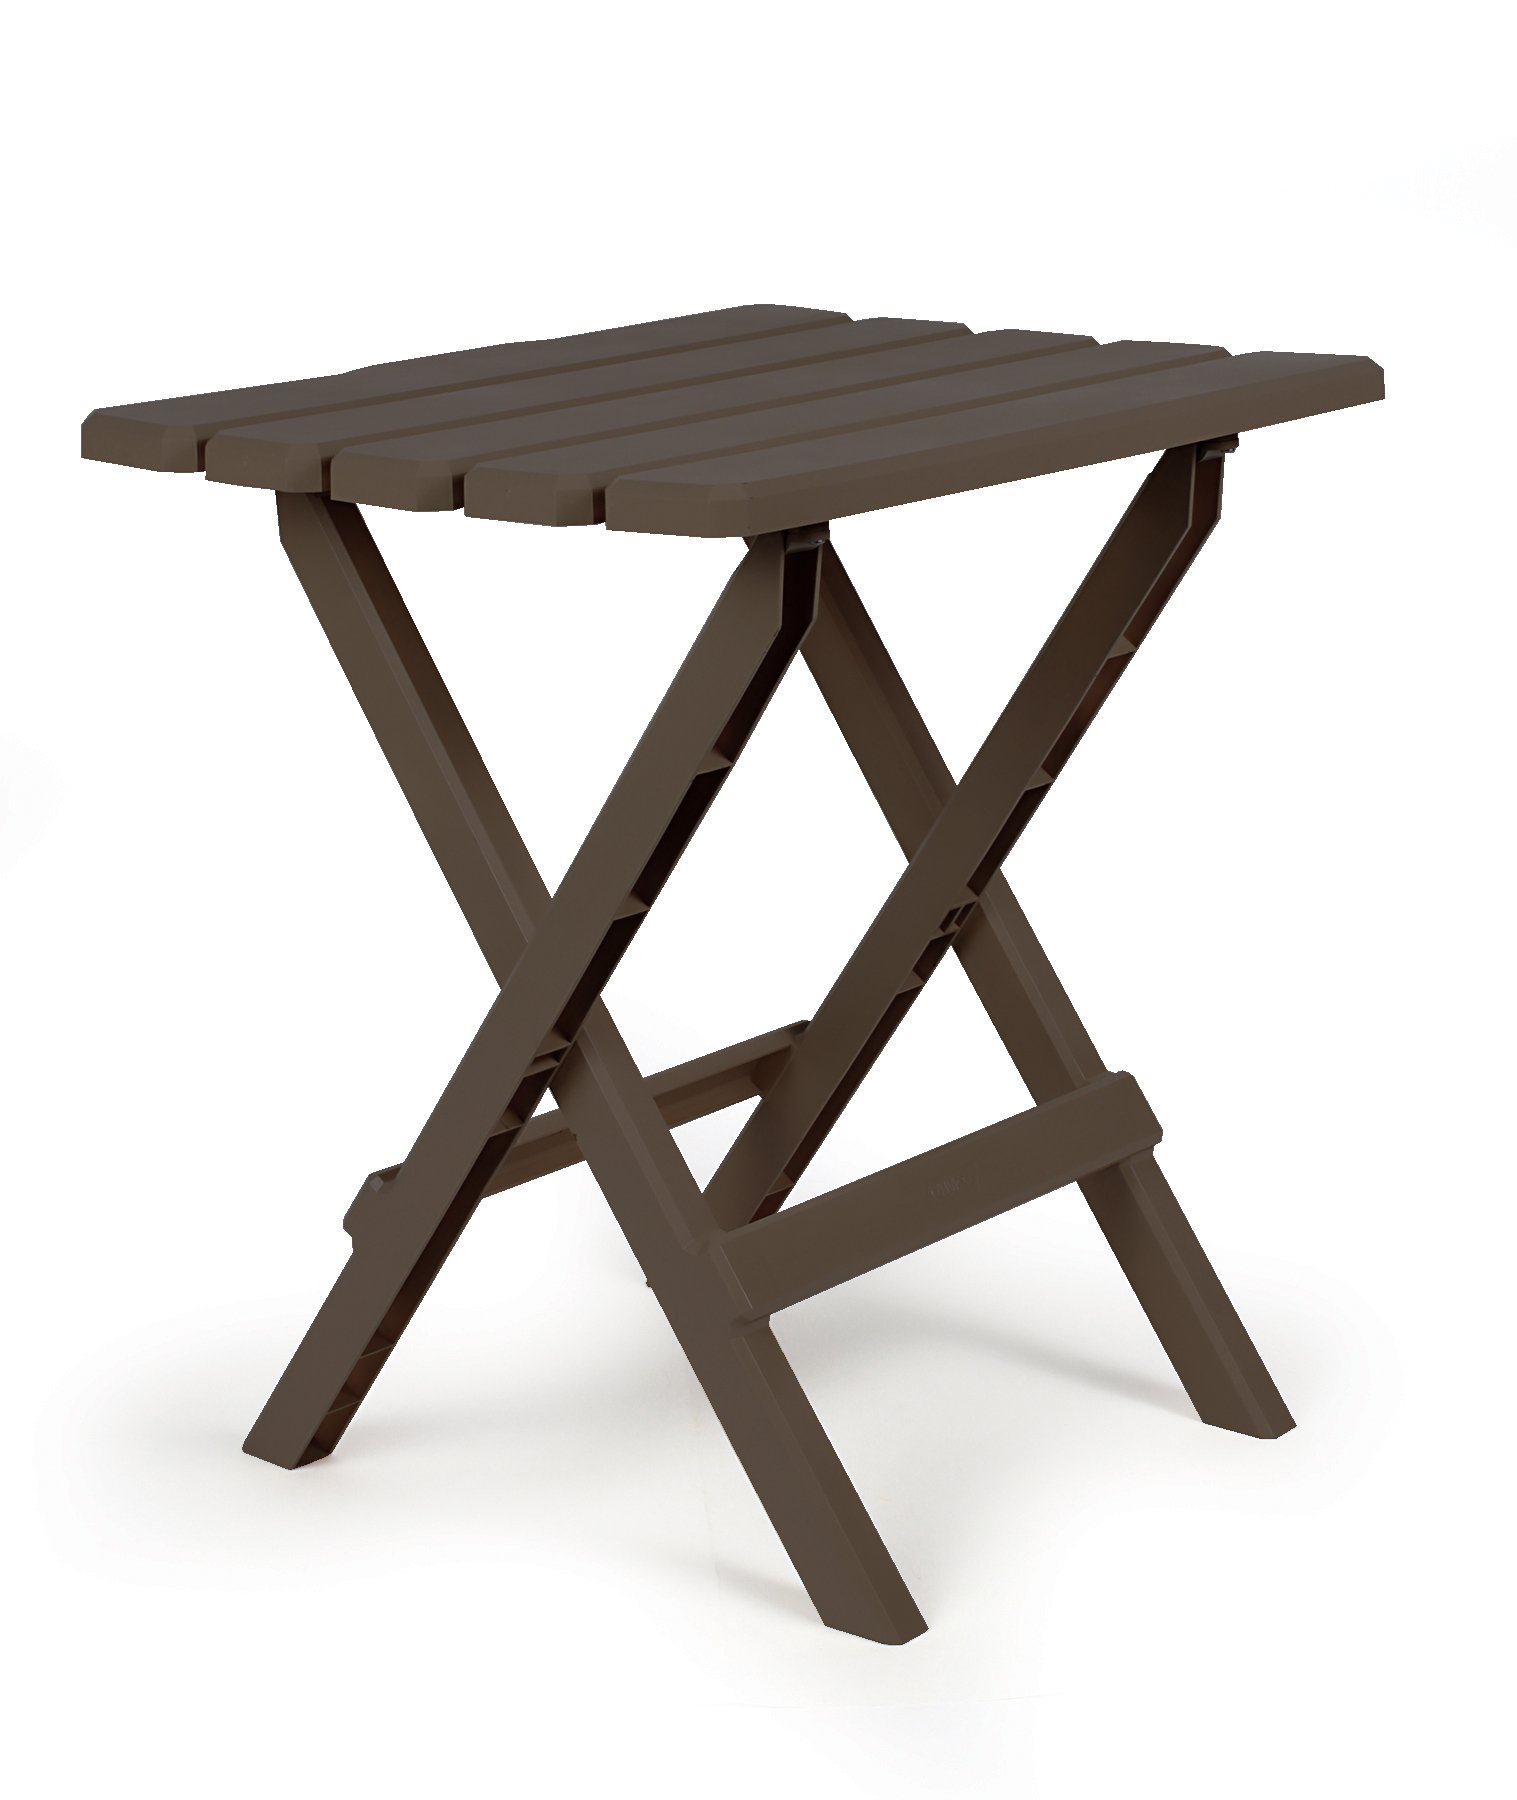 Camco 51886 Mocha Large Adirondack Portable Outdoor Folding Side Table, Perfect for The Beach, Camping, Picnics, Cookouts and More, Weatherproof and Rust Resistant by Camco